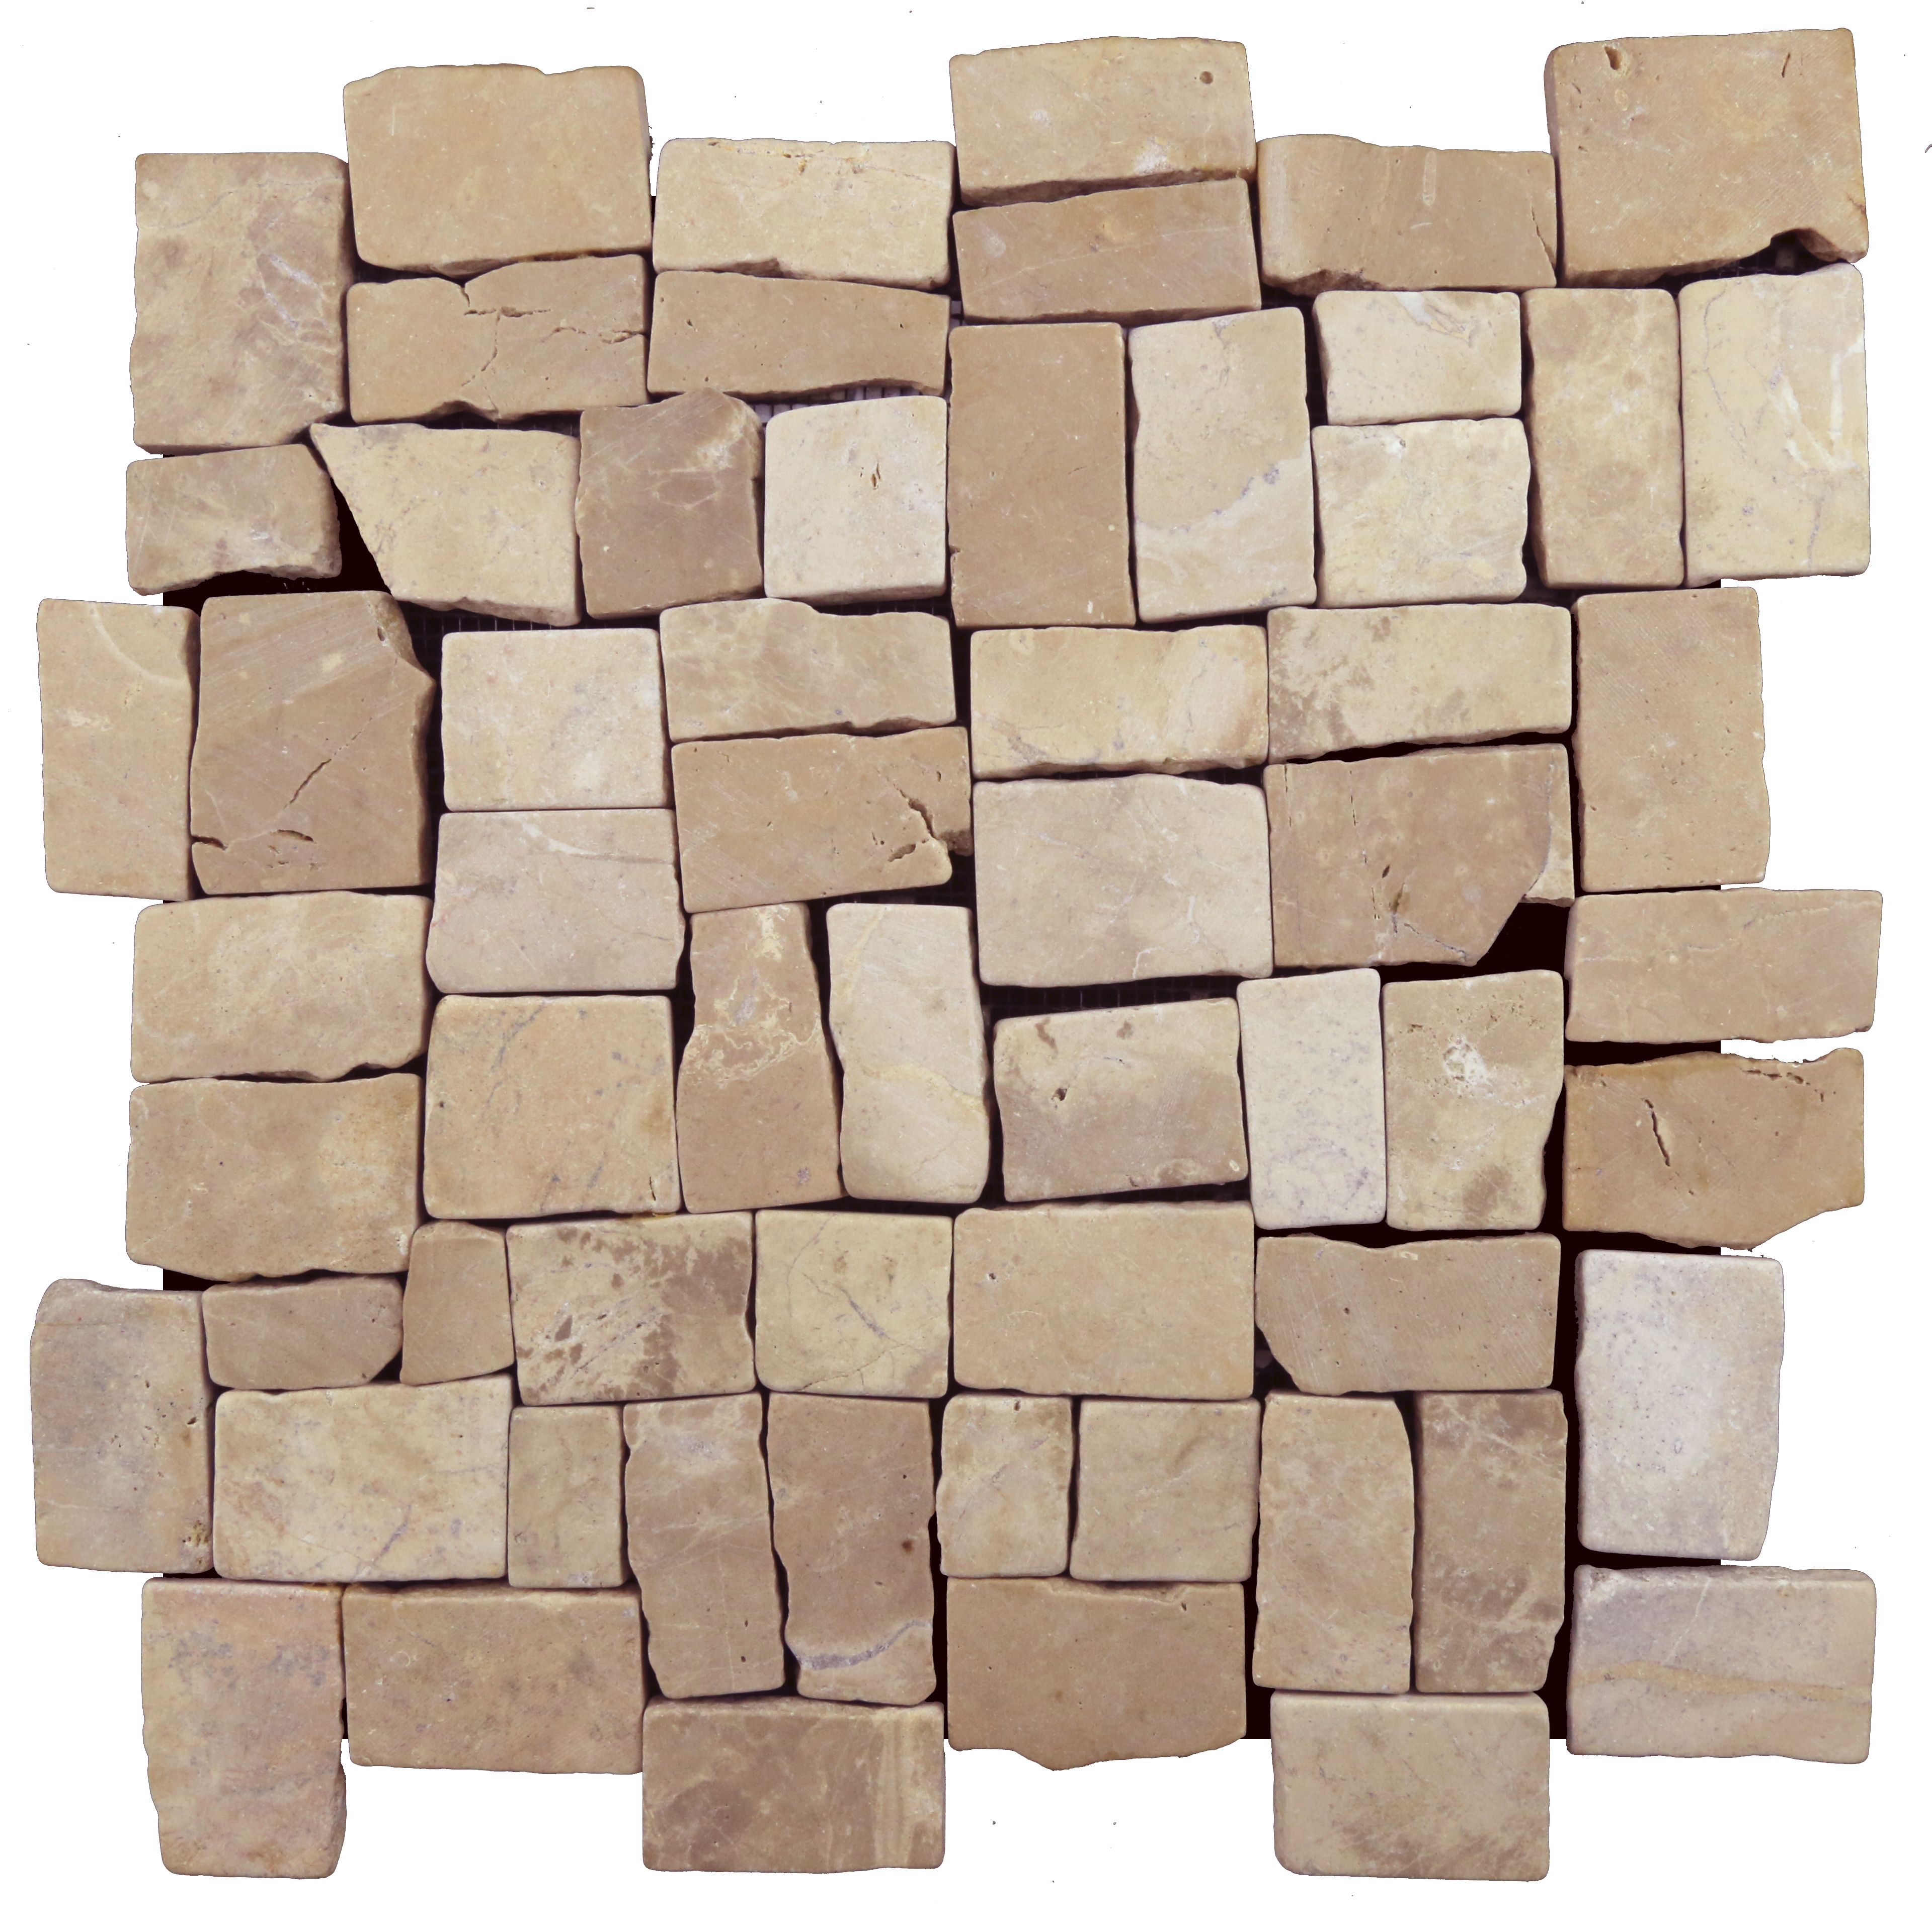 Easy To Install Mesh Backed Interlocking Natural Stone Tile Made Out Of High Quality Indonesian Tan Marble Ston Pebble Mosaic Tile Pebble Tile Mosaic Tiles